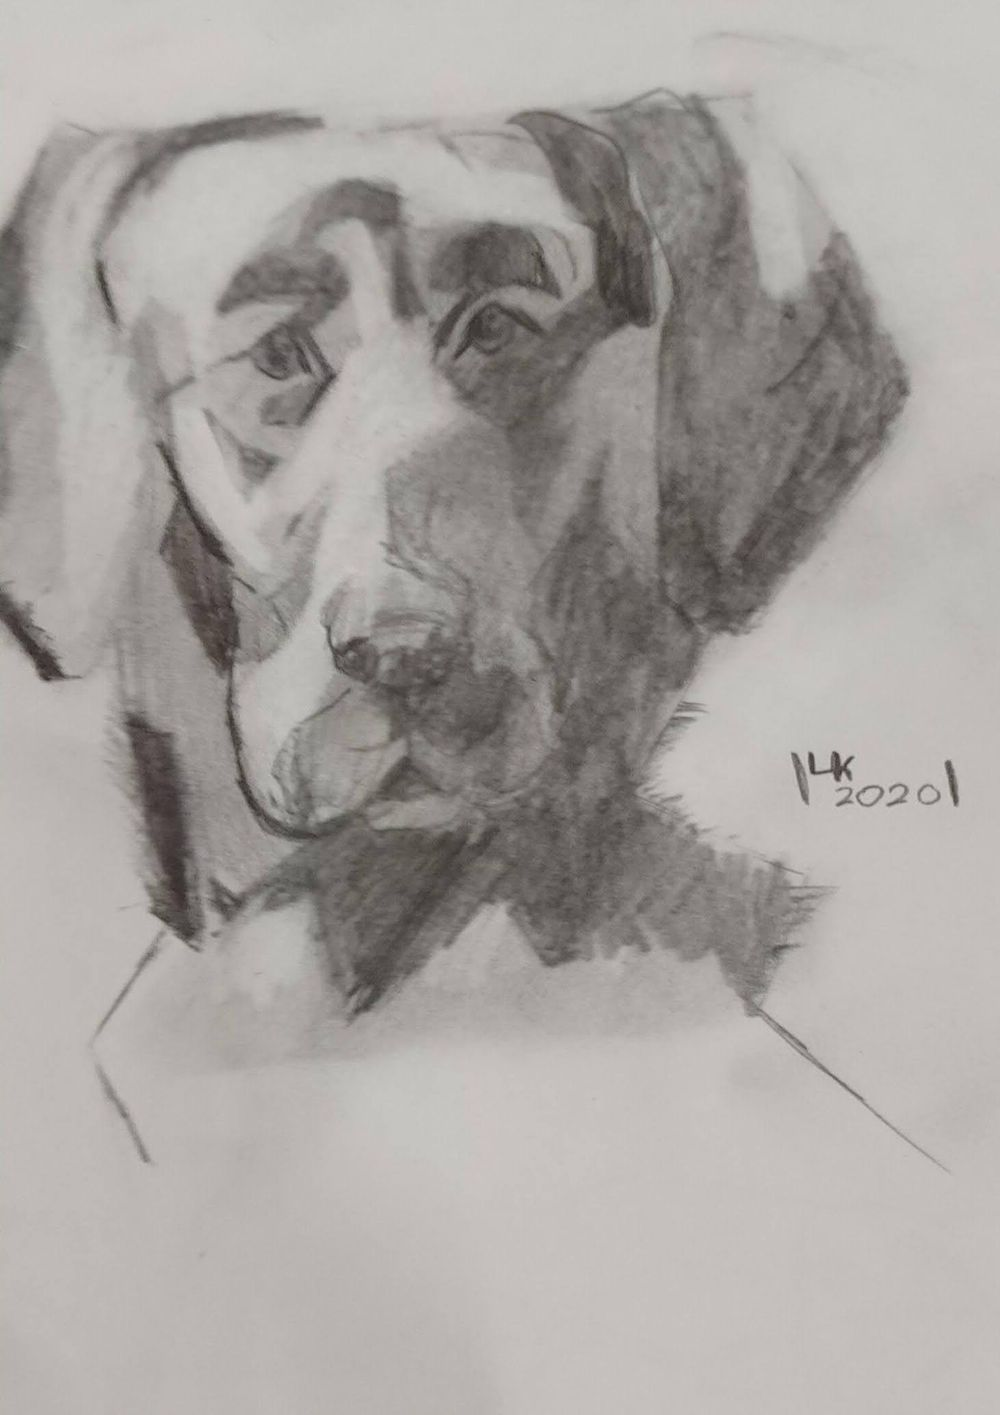 Dachshund and Labrador drawing - image 1 - student project